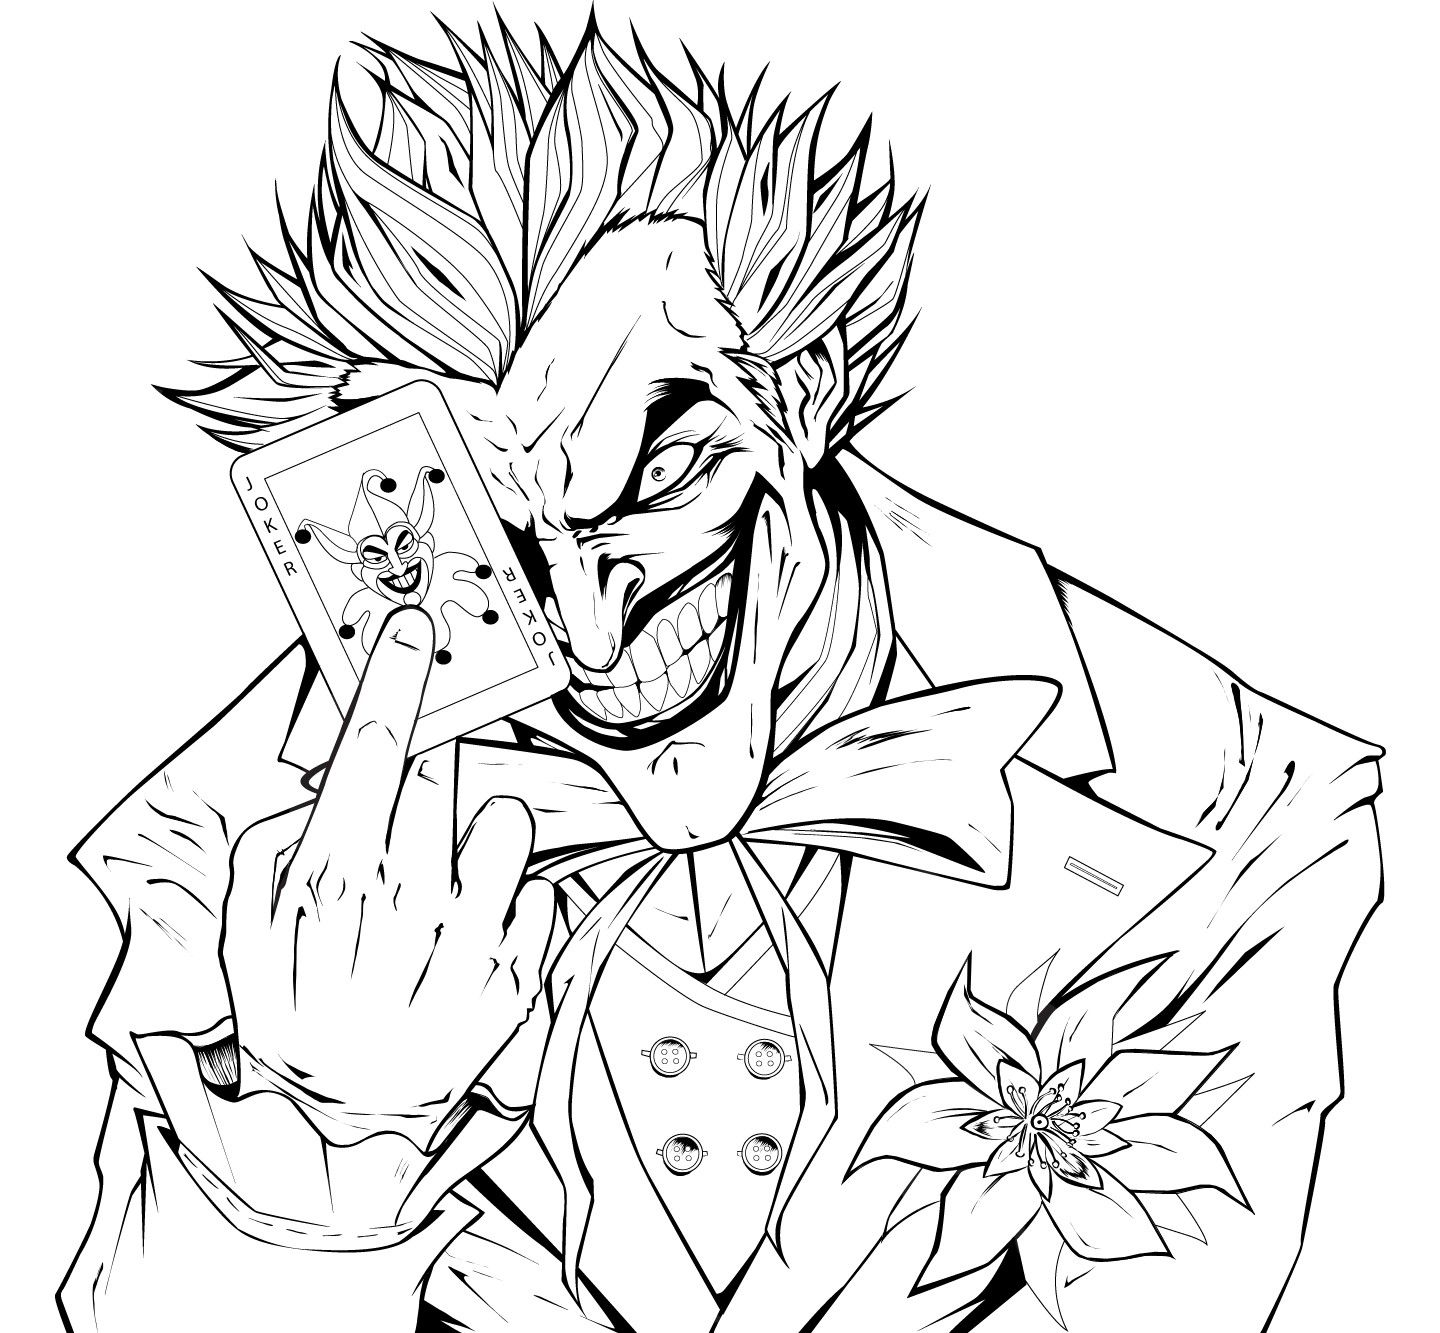 1440x1333 Joker Coloring Pages Printable My Image Sense Coloring Pages